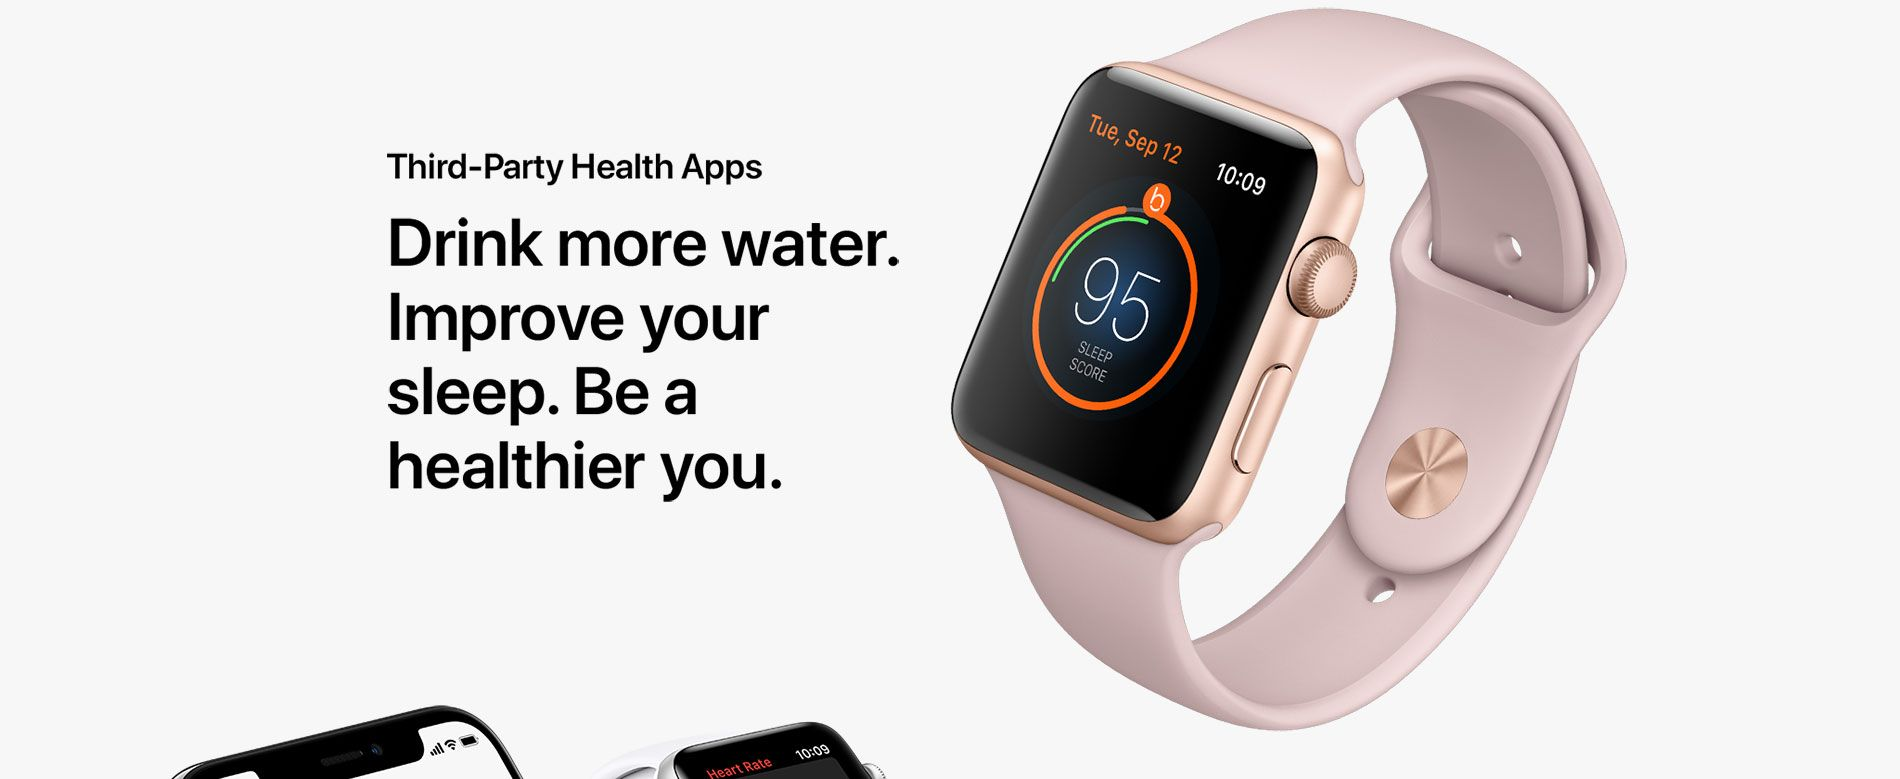 Third-Party Health Apps - Drink more water. Improve your sleep. Be a healthier you.